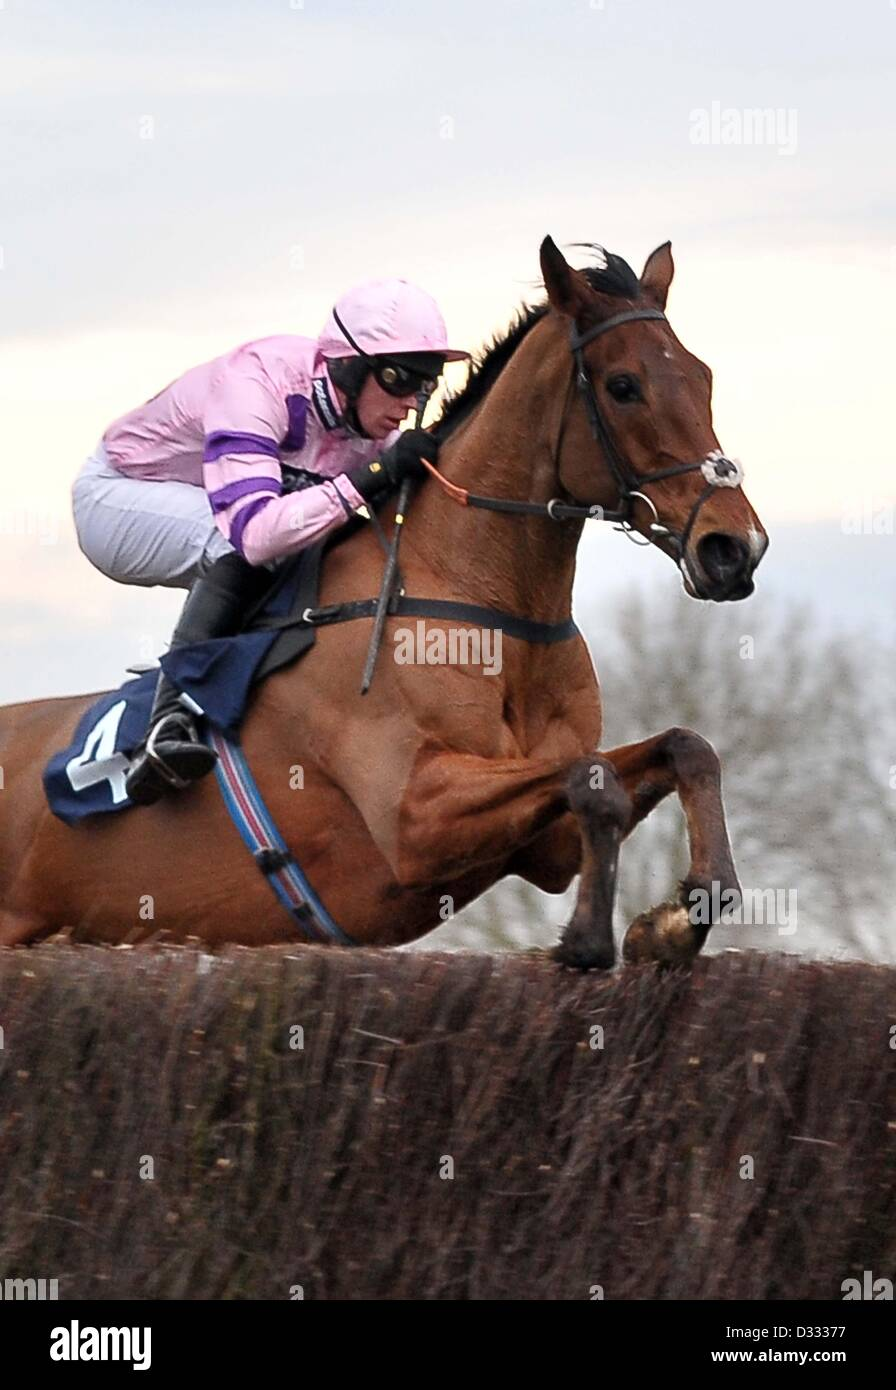 Huntingdon Race Course. Cambridgeshire. 7th February 2013. Winner TRICKY TRICKSTER ridden by Mr S Clements jumps - Stock Image